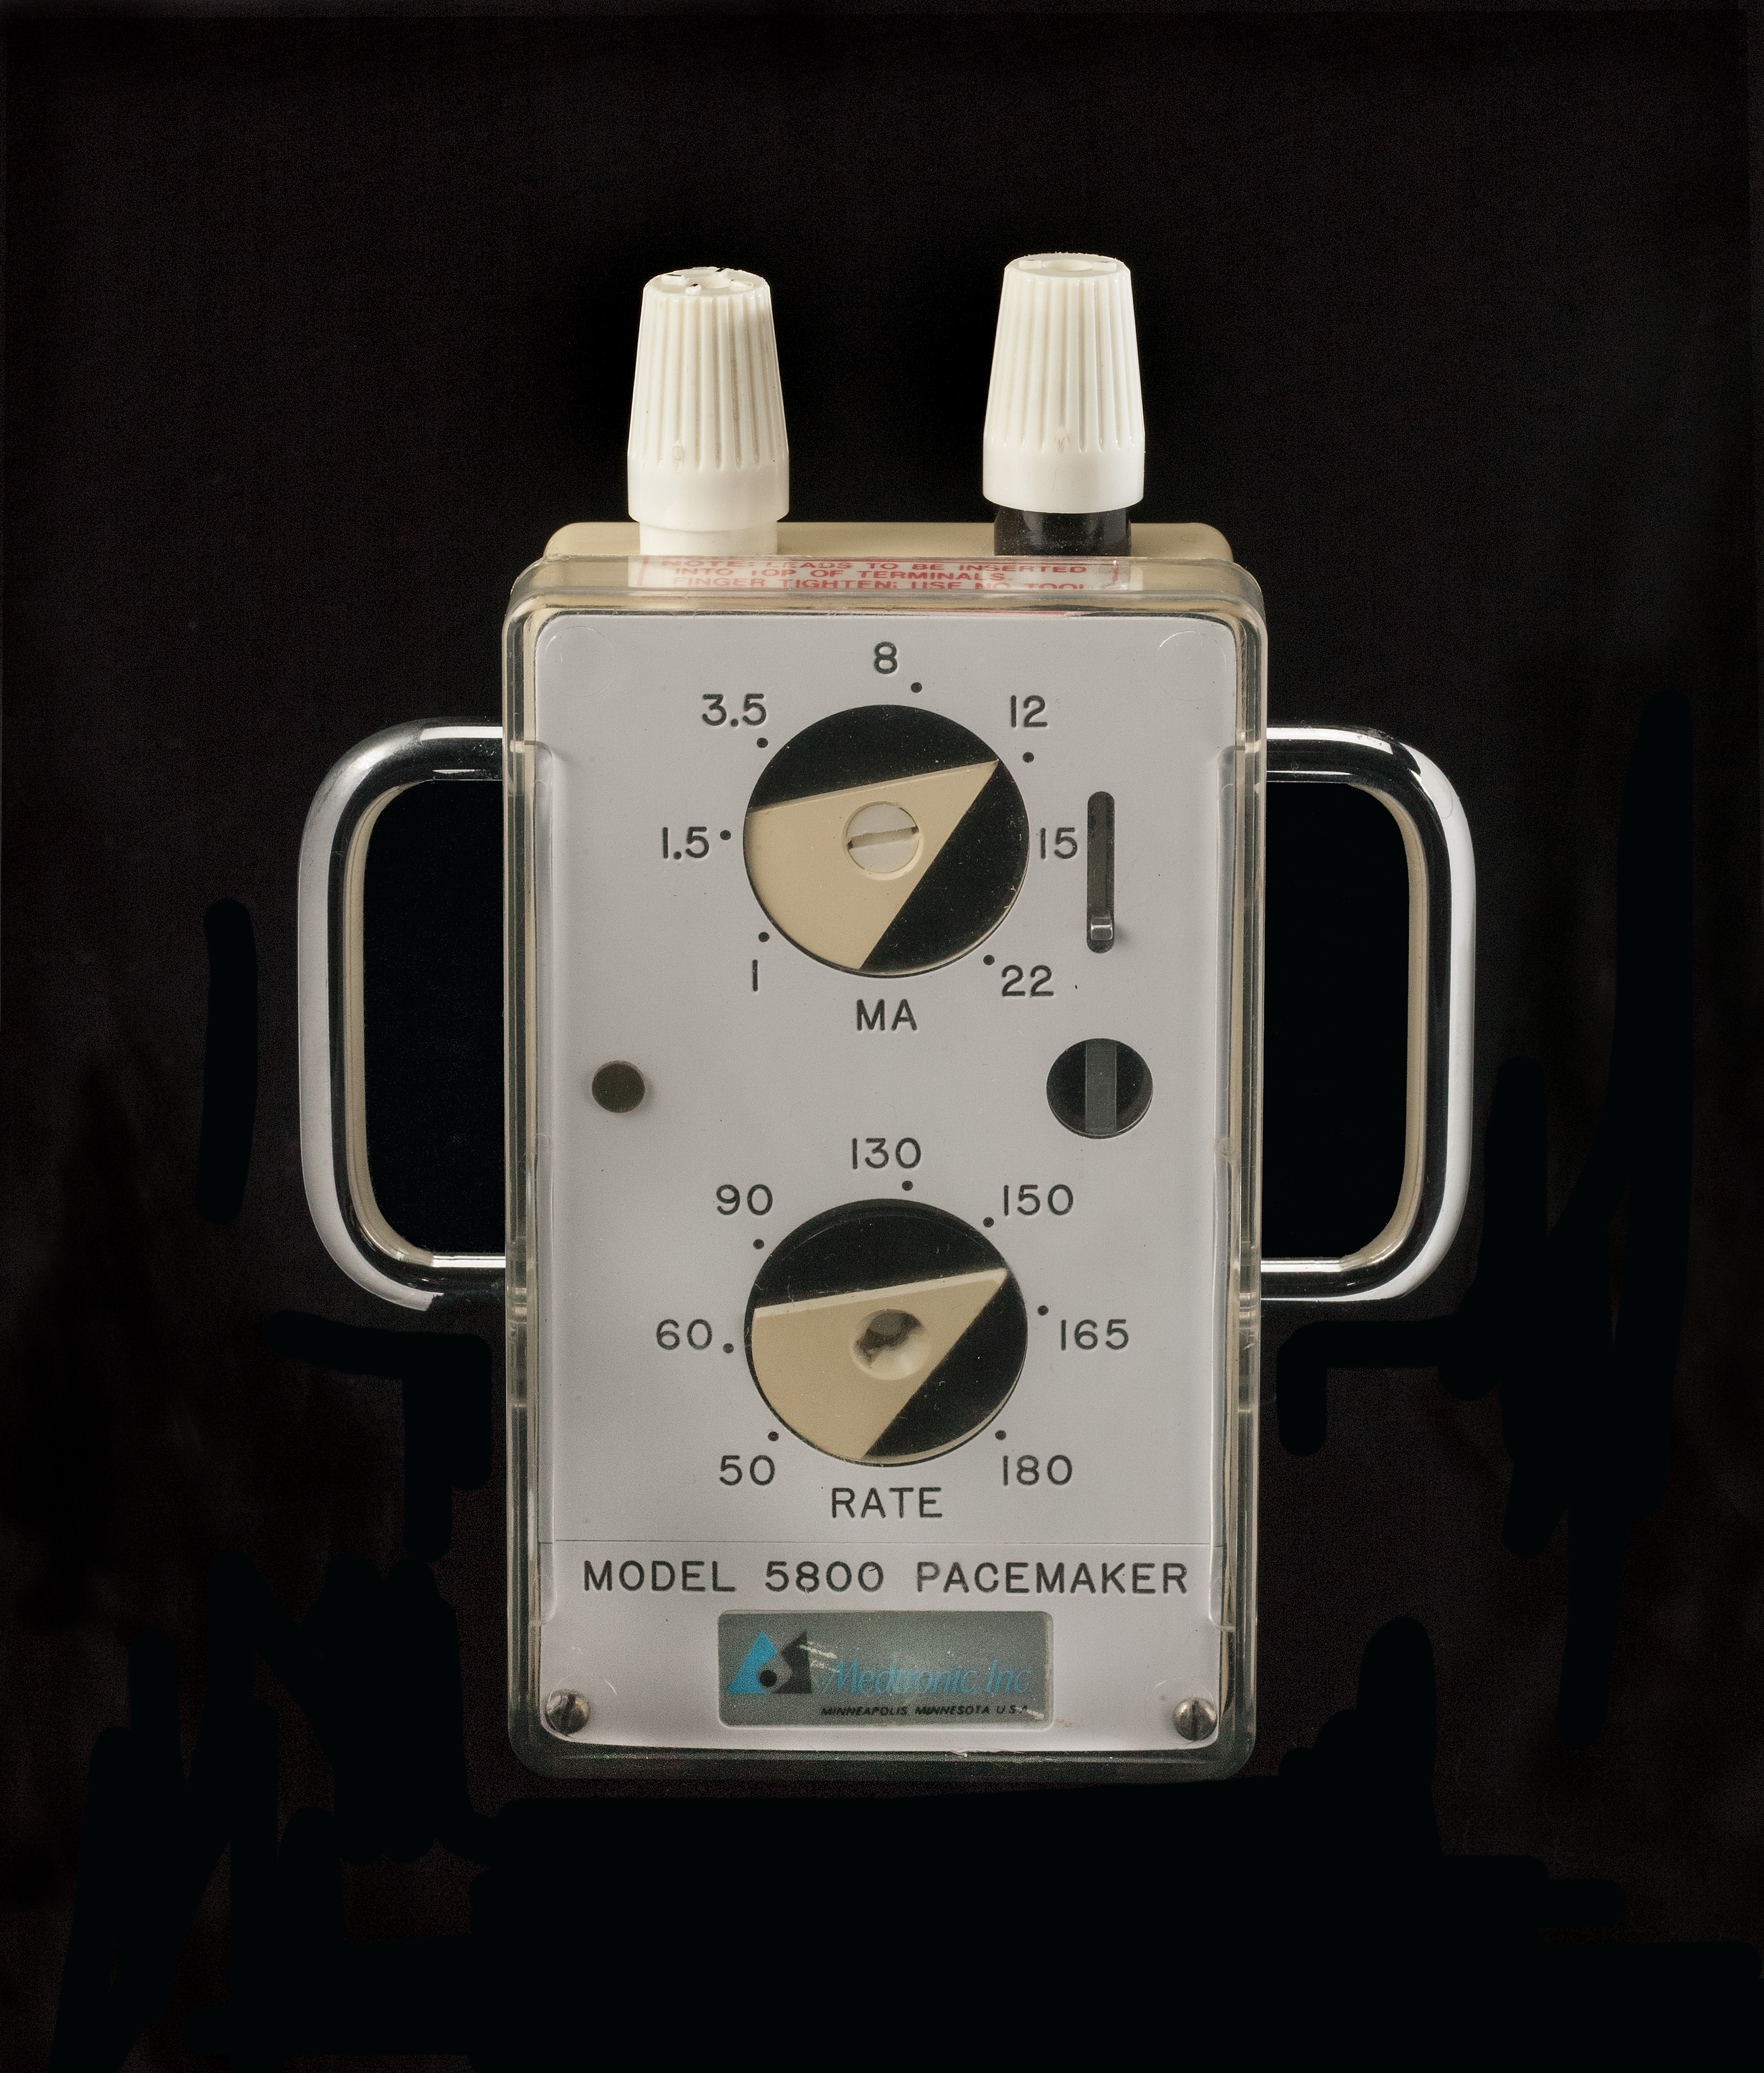 Medtronic 5800 Model External Pacemaker, about 1972